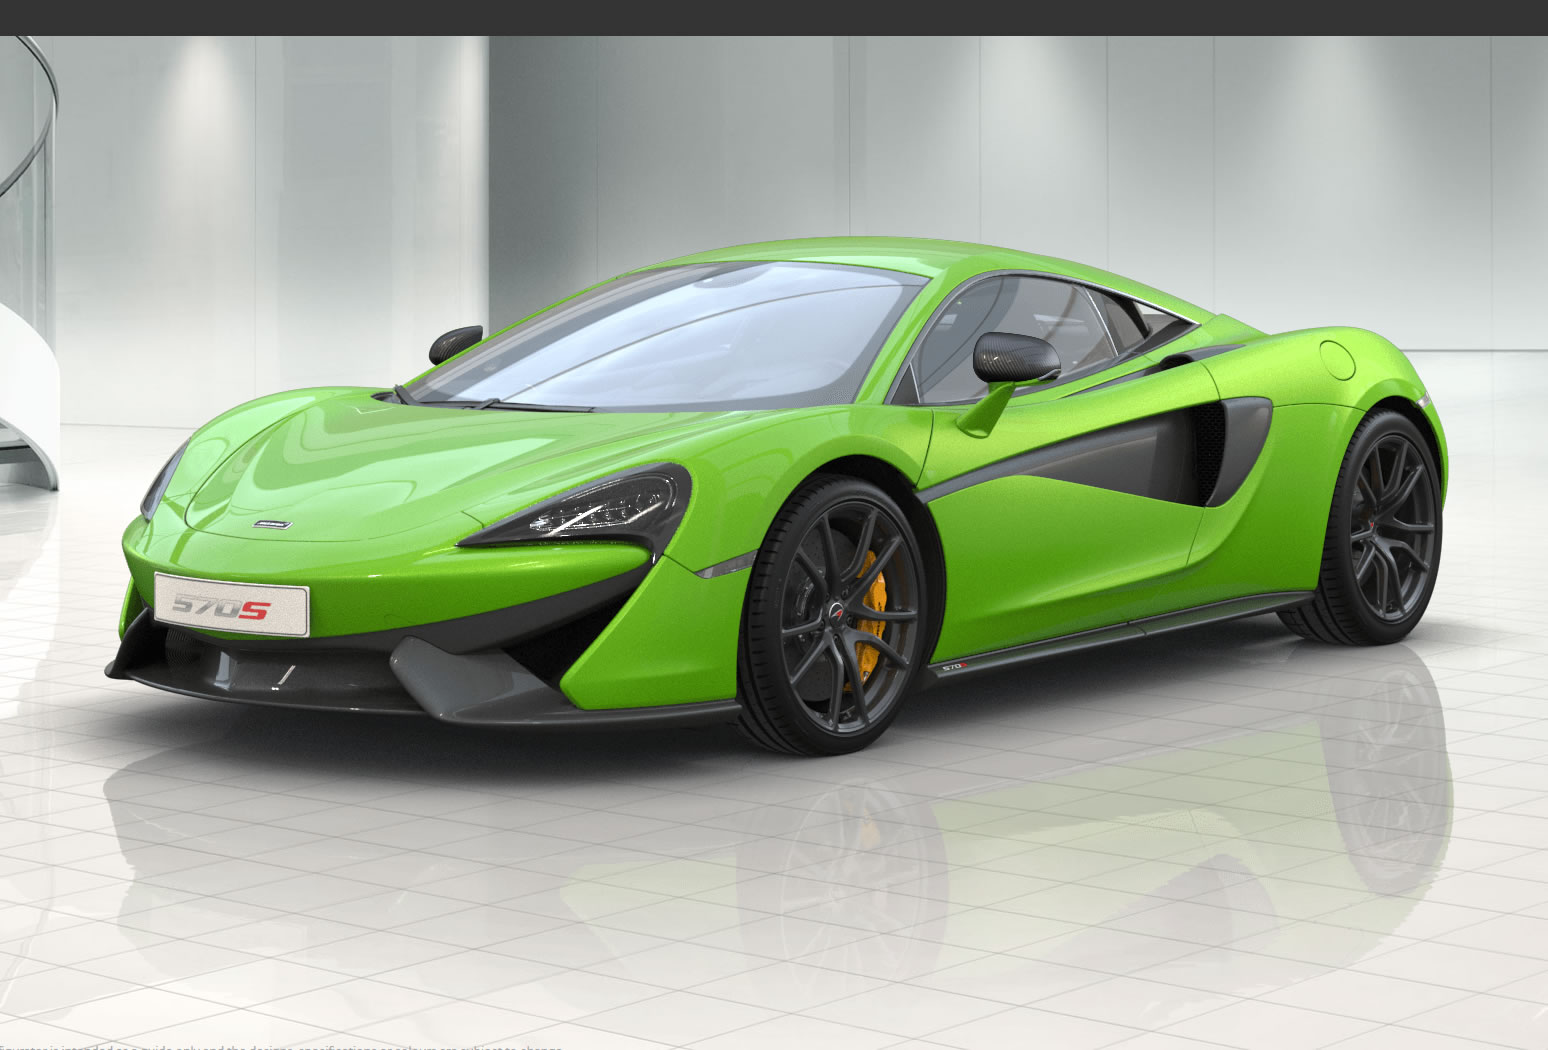 2015 Mclaren 570s Front Photo Mantis Green Exterior